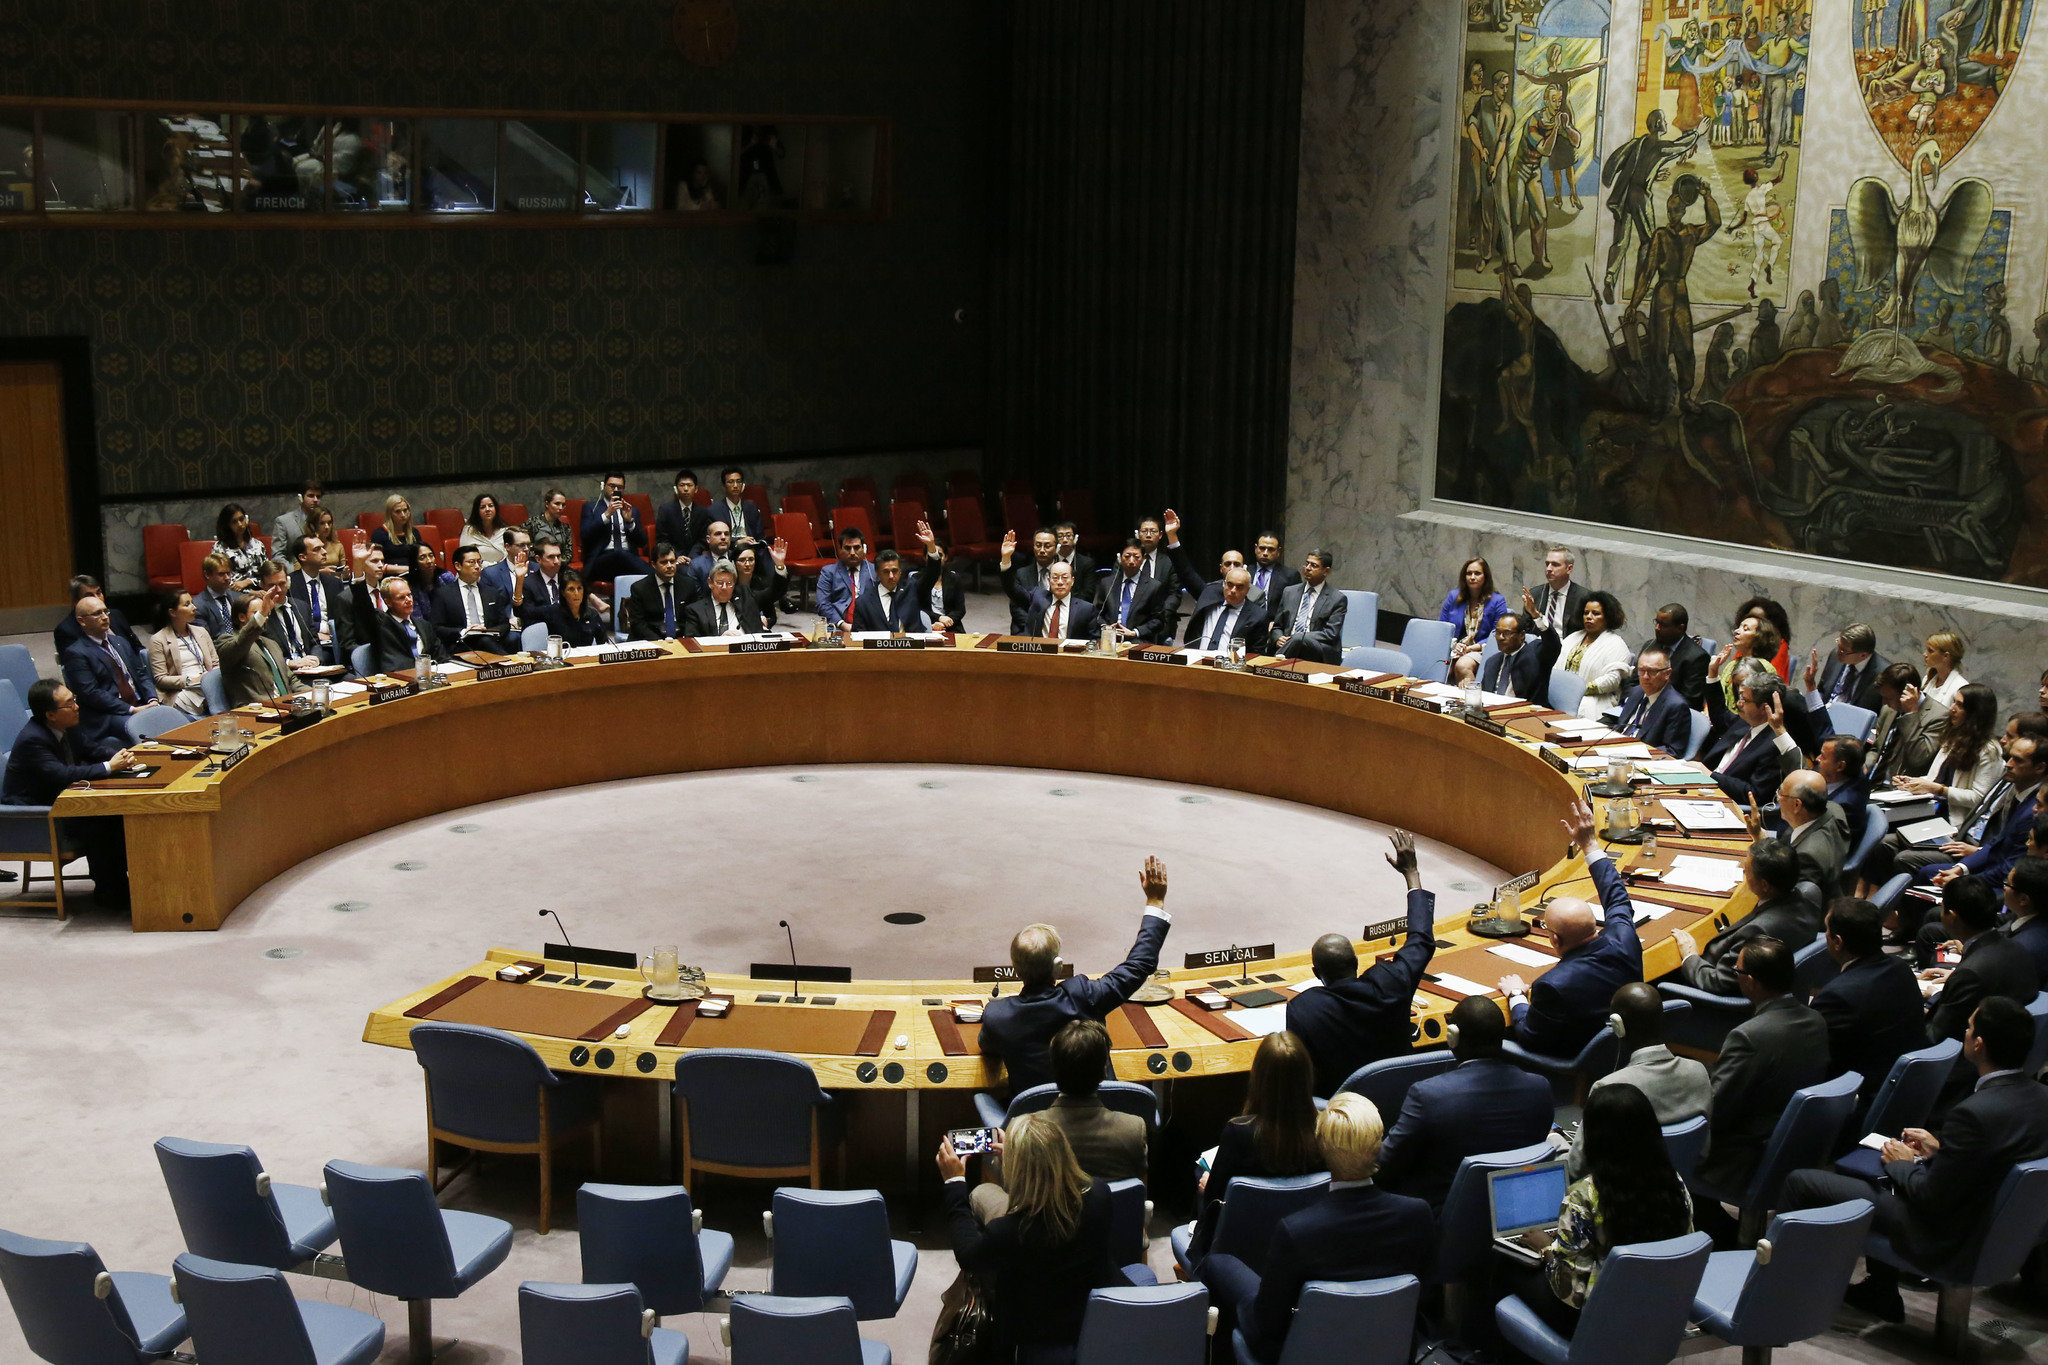 UN Security Council adopts new North Korea sanctions